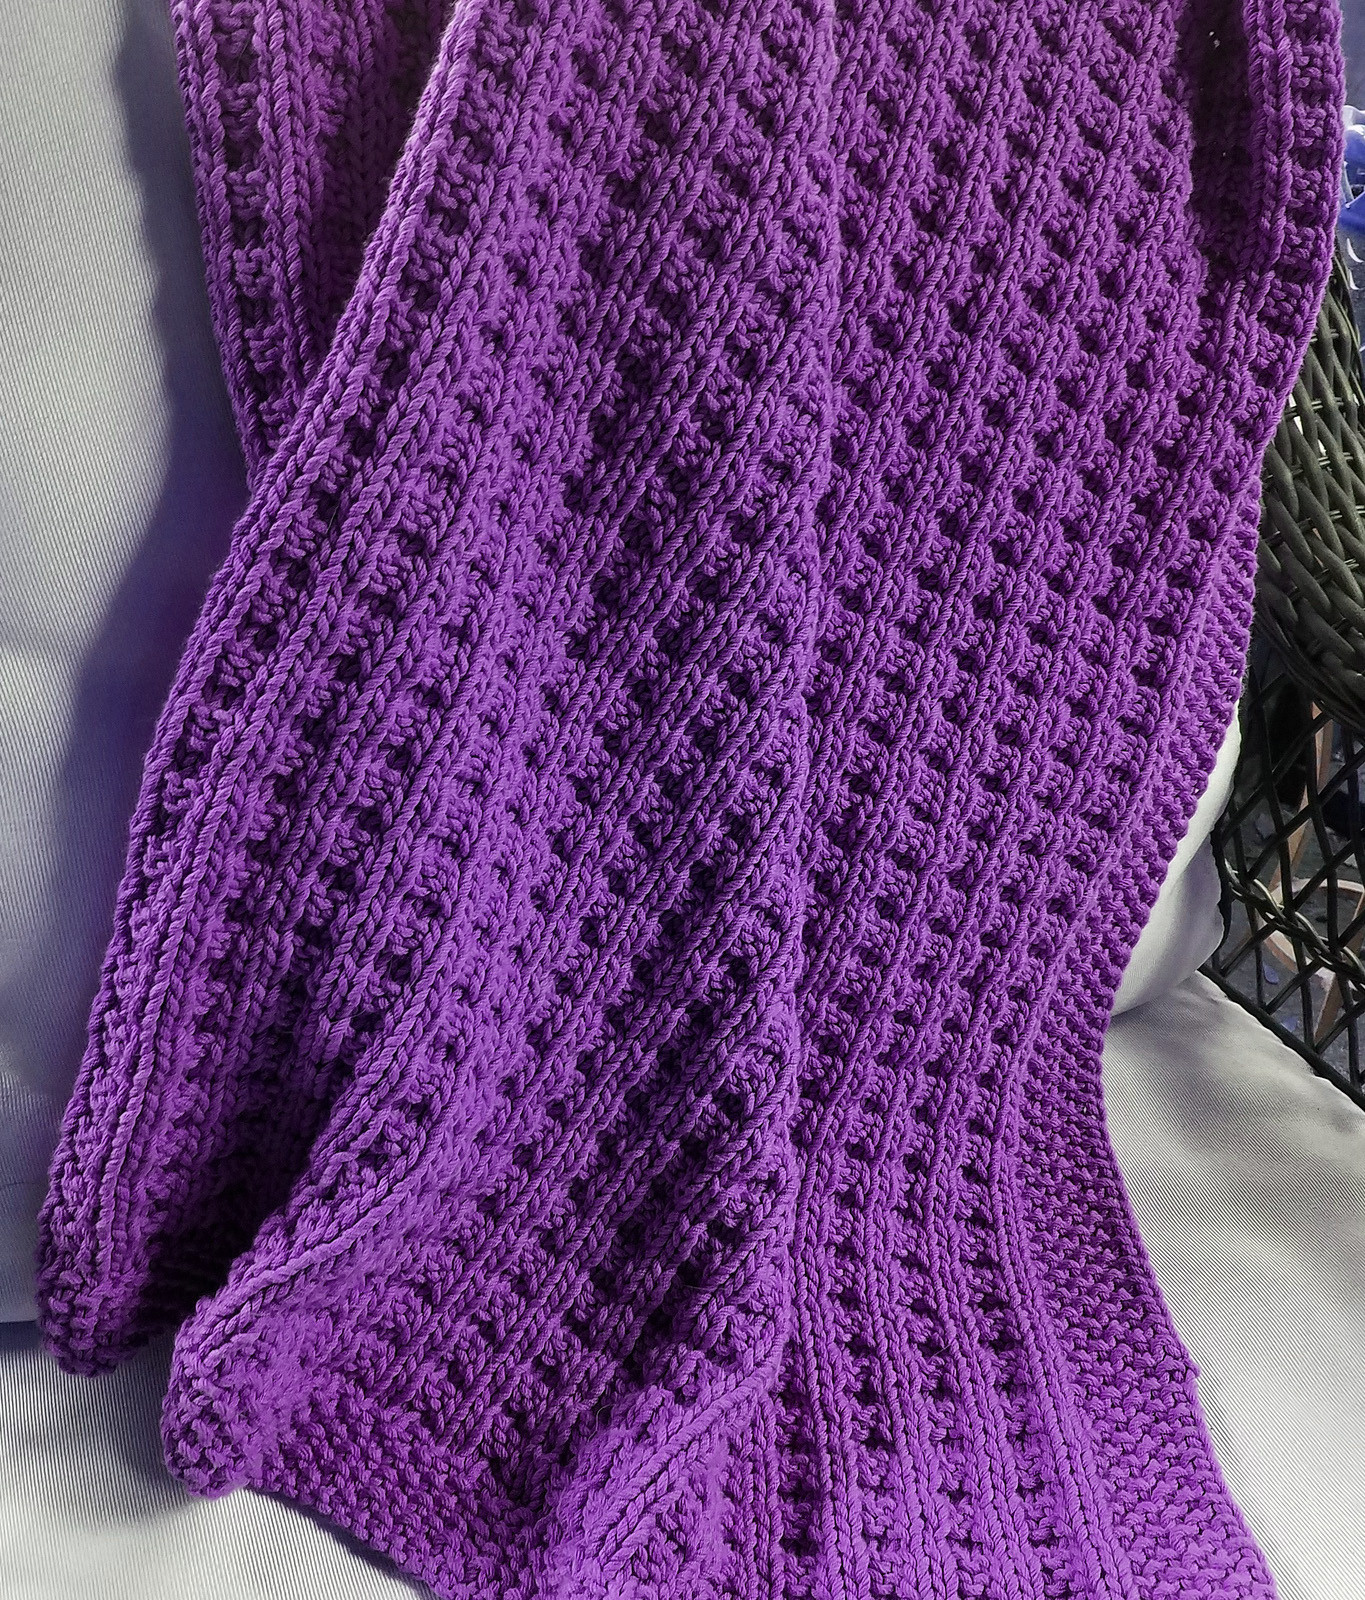 Knitted Blanket Patterns Fresh Quick Baby Blanket Knitting Patterns Of Adorable 45 Photos Knitted Blanket Patterns